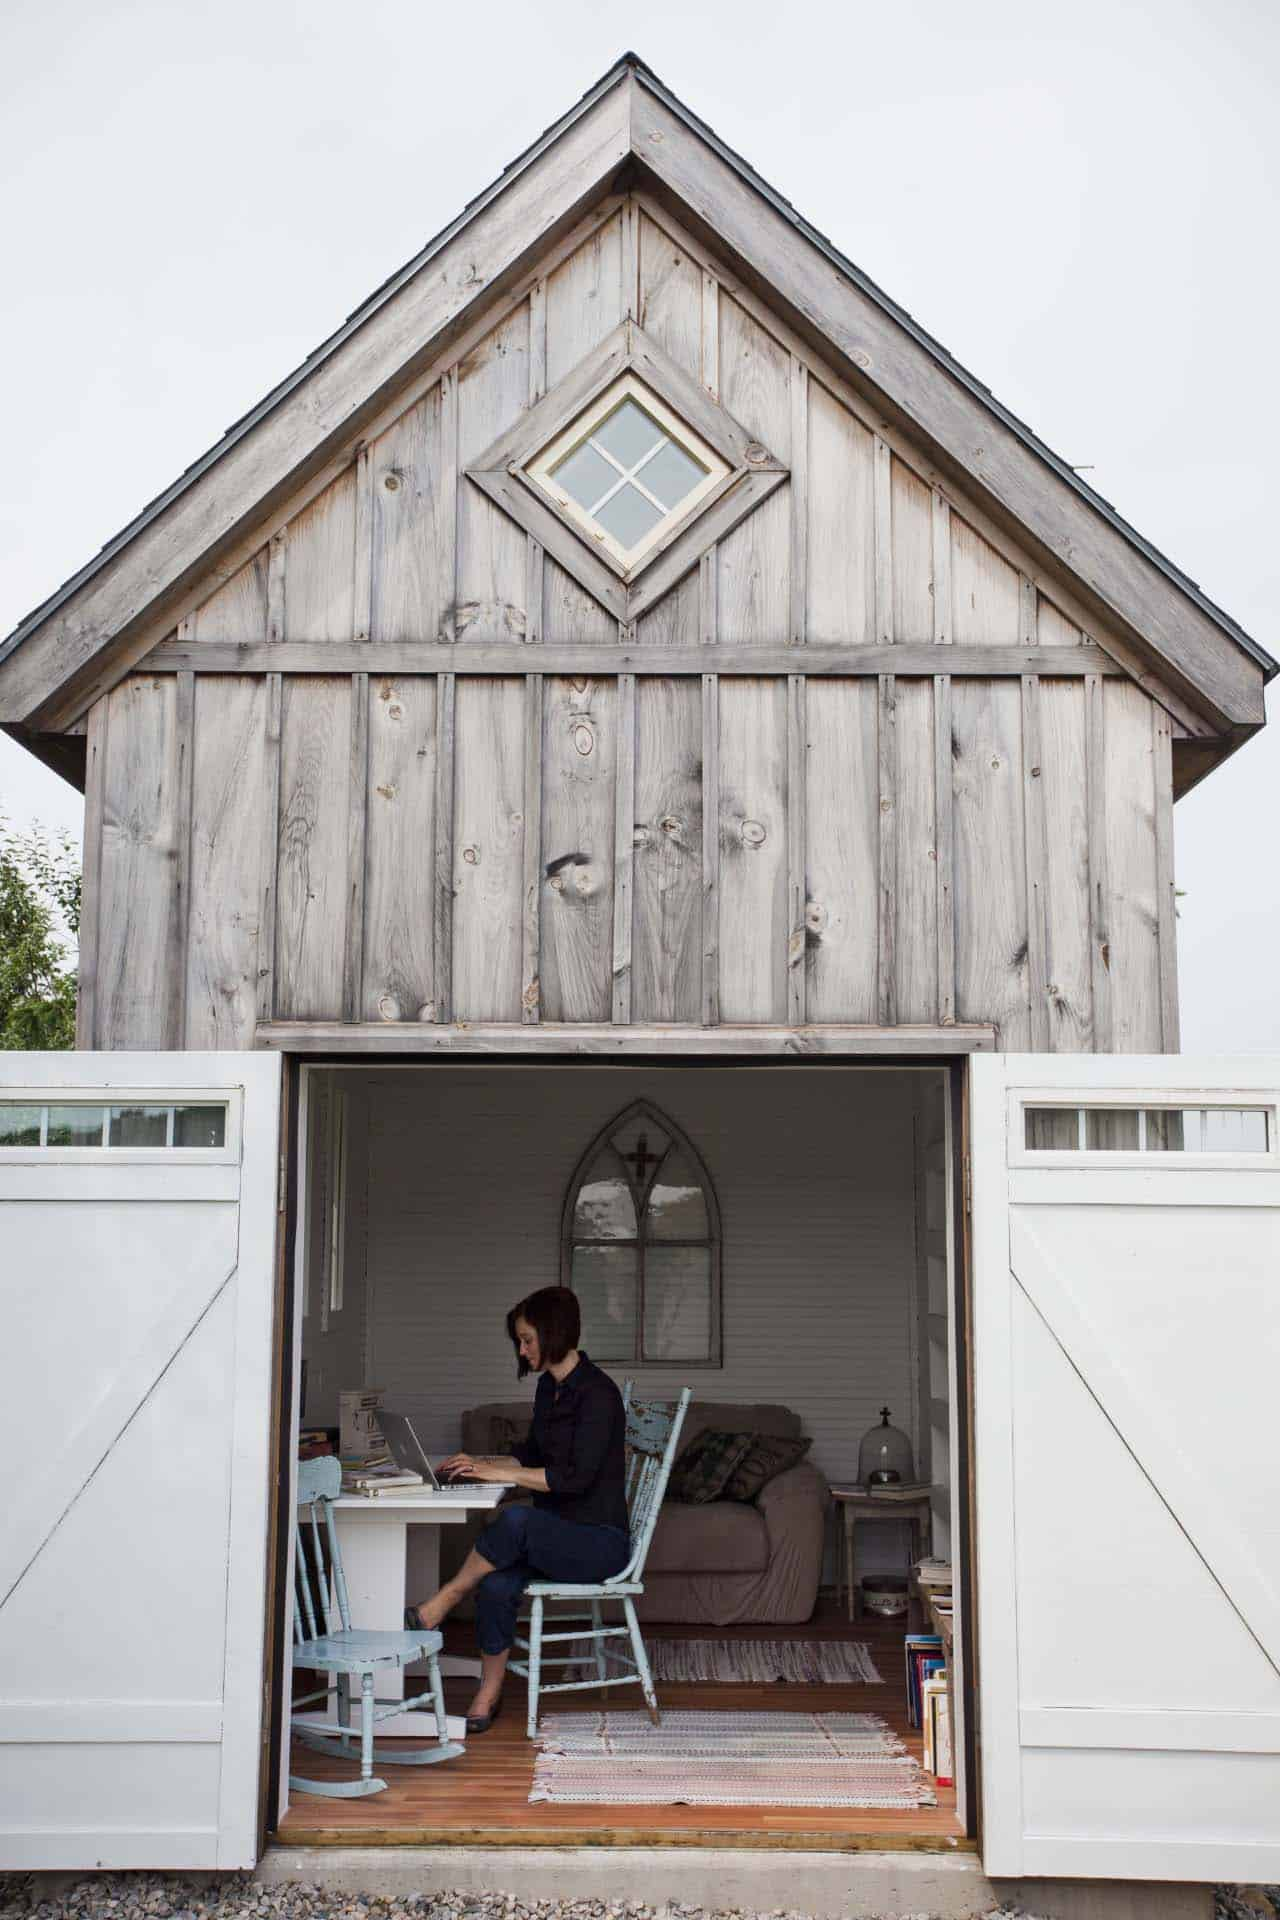 Rustic backyard farmhouse style she shed writer's retreat of Ann Voskamp. Come explore She Shed Chic, Potting Shed & Backyard Inspiration.